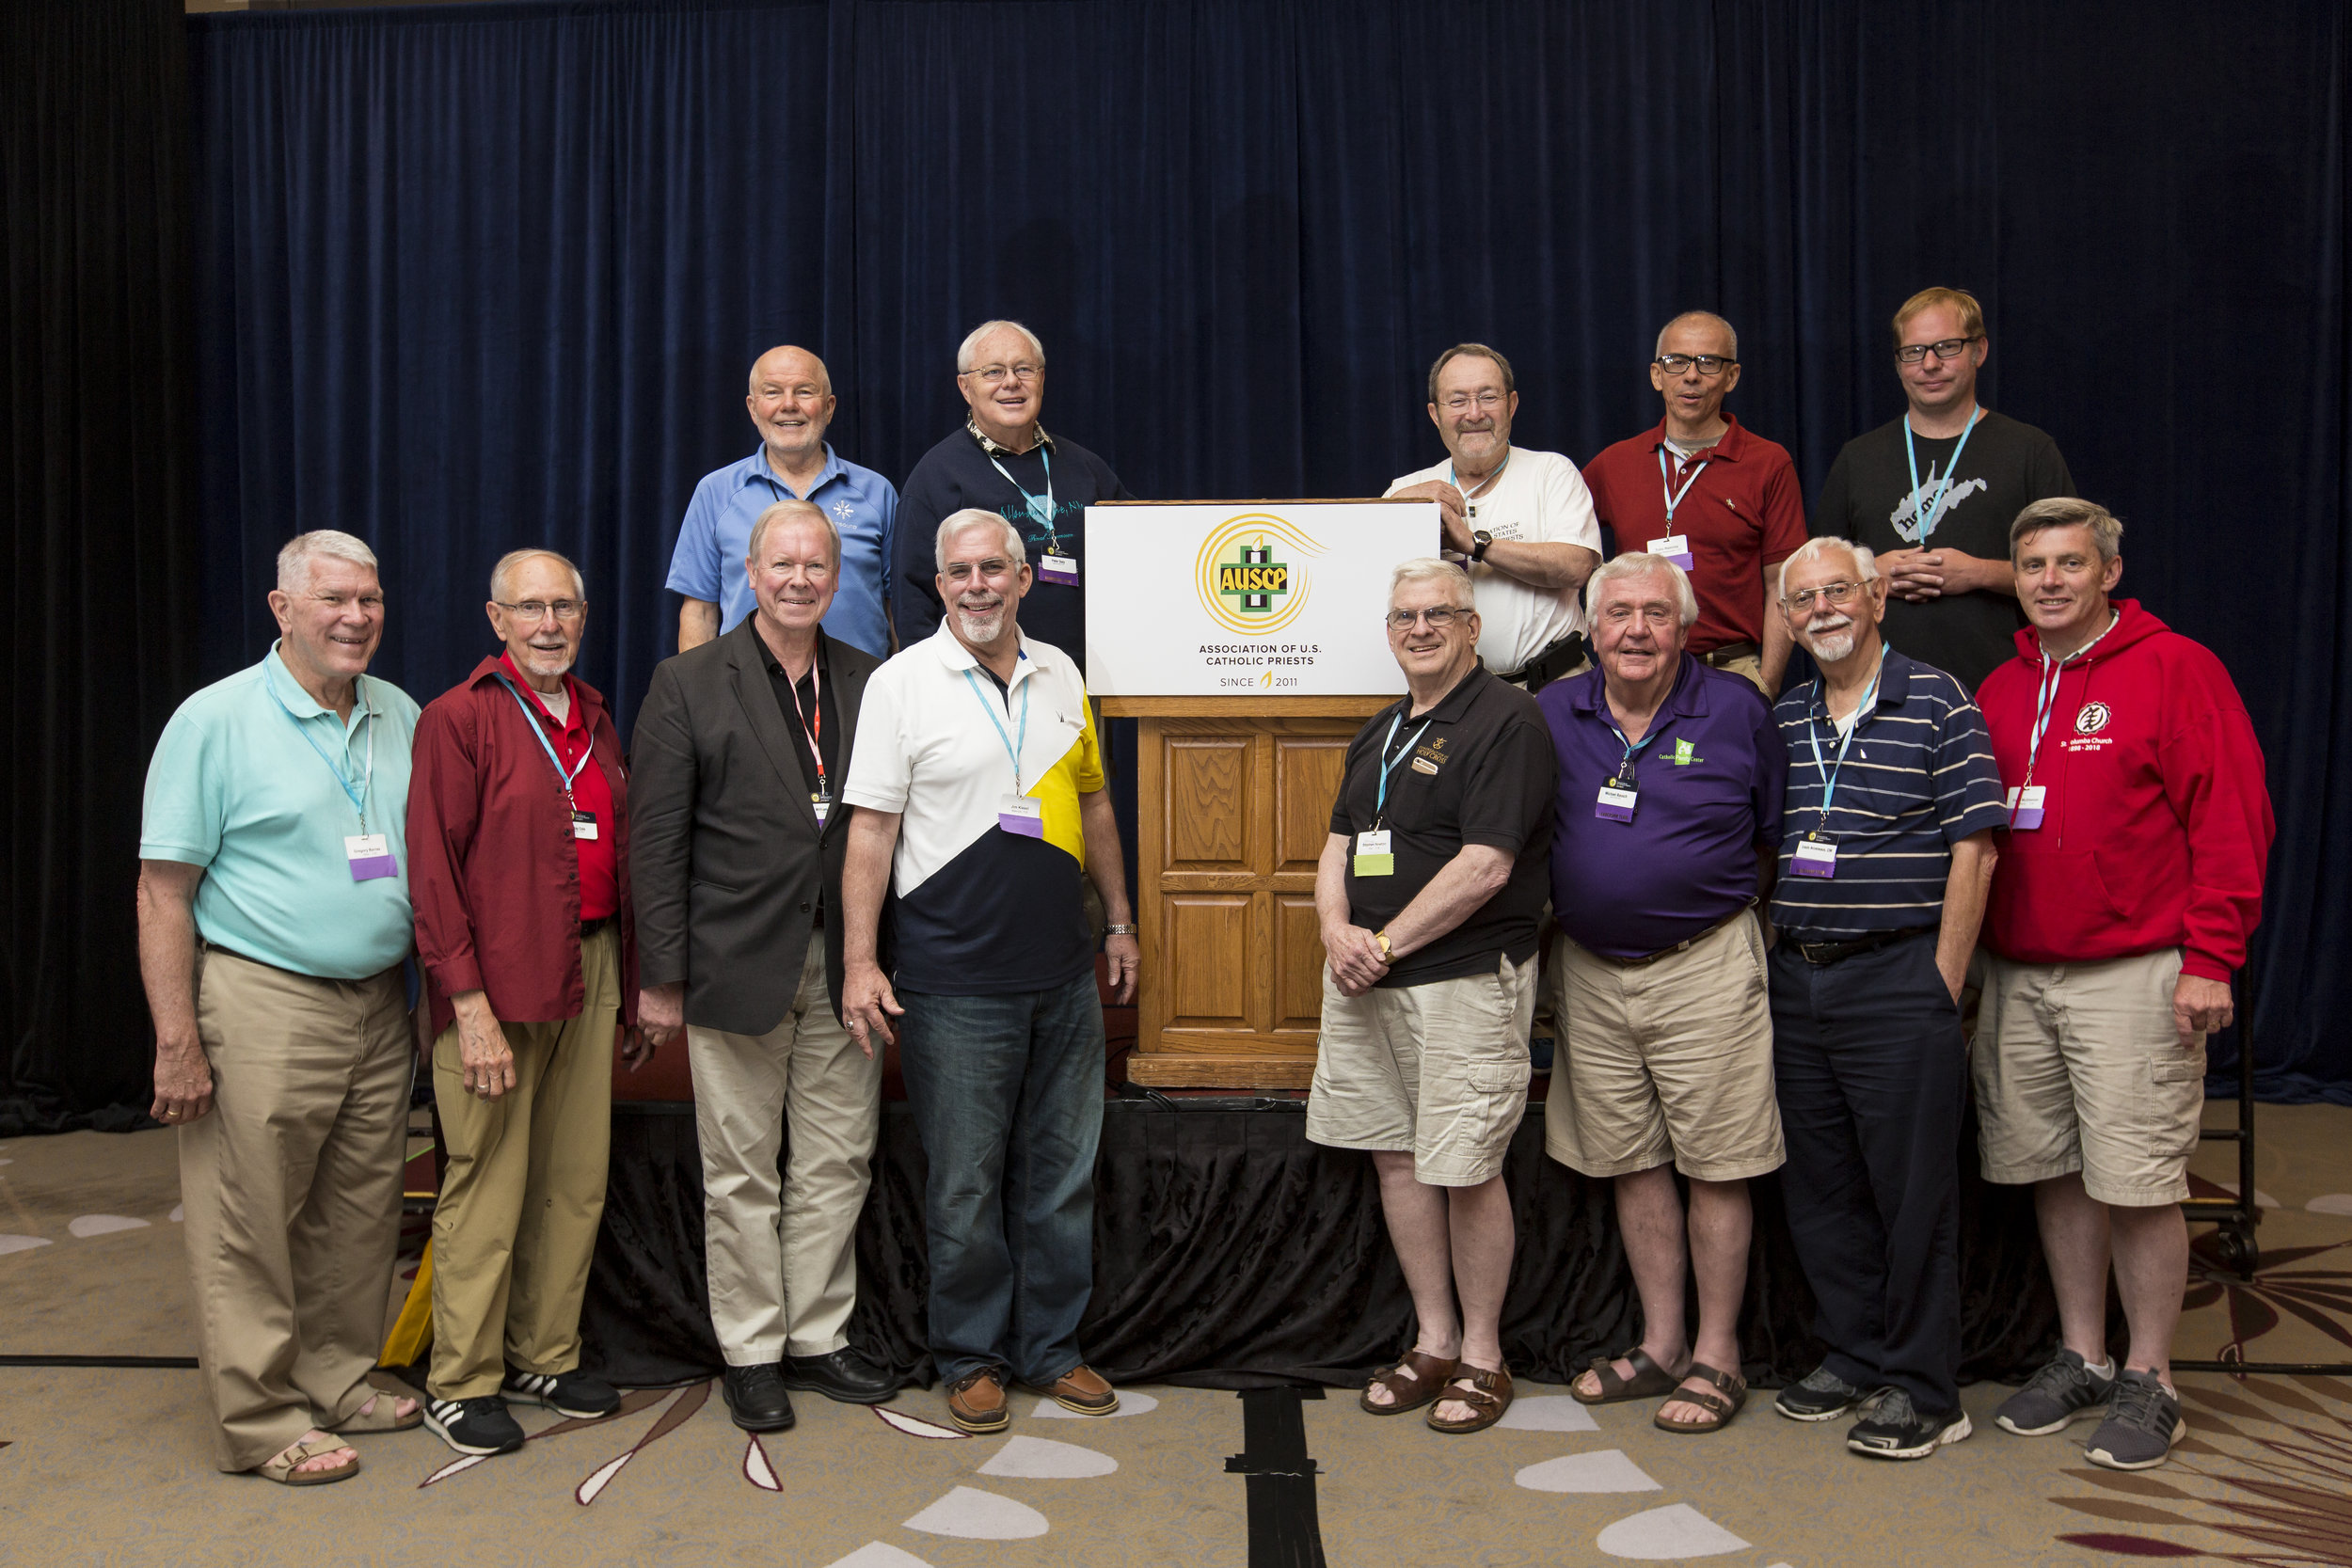 AUSCP Leadership: Front row, from left, Greg Barras, Diocese of Biloxi, Chair; Ray Cole, Diocese of Metuchen; Bill Spilly, Diocese of Rochester, Vice Chair; Jim Kiesel, Archdiocese of Baltimore, completing two terms; Stephen Newton, Congregation of the Holy Cross, Notre Dame; Michael Bausch, Diocese of Rochester; Louis Arceneaux, Congregation of the Mission, New Orleans, Secretary; Aiden McAleenan, Diocese of Oakland; top row, Bob Bonnot, Diocese of Youngstown, Executive Director; Peter Daly, Archdiocese of Washington,DC; Kevin Clinton, Archdiocese of St. Paul-Minneapolis, Chair Emeritus; Tulio Ramiez, Yarumal Missionaries, Bronx; Andy Switzer, Diocese of Wheeling-Charleston. Not in picture, Lee Bacchi, Diocese of Joliet, Treasurer.